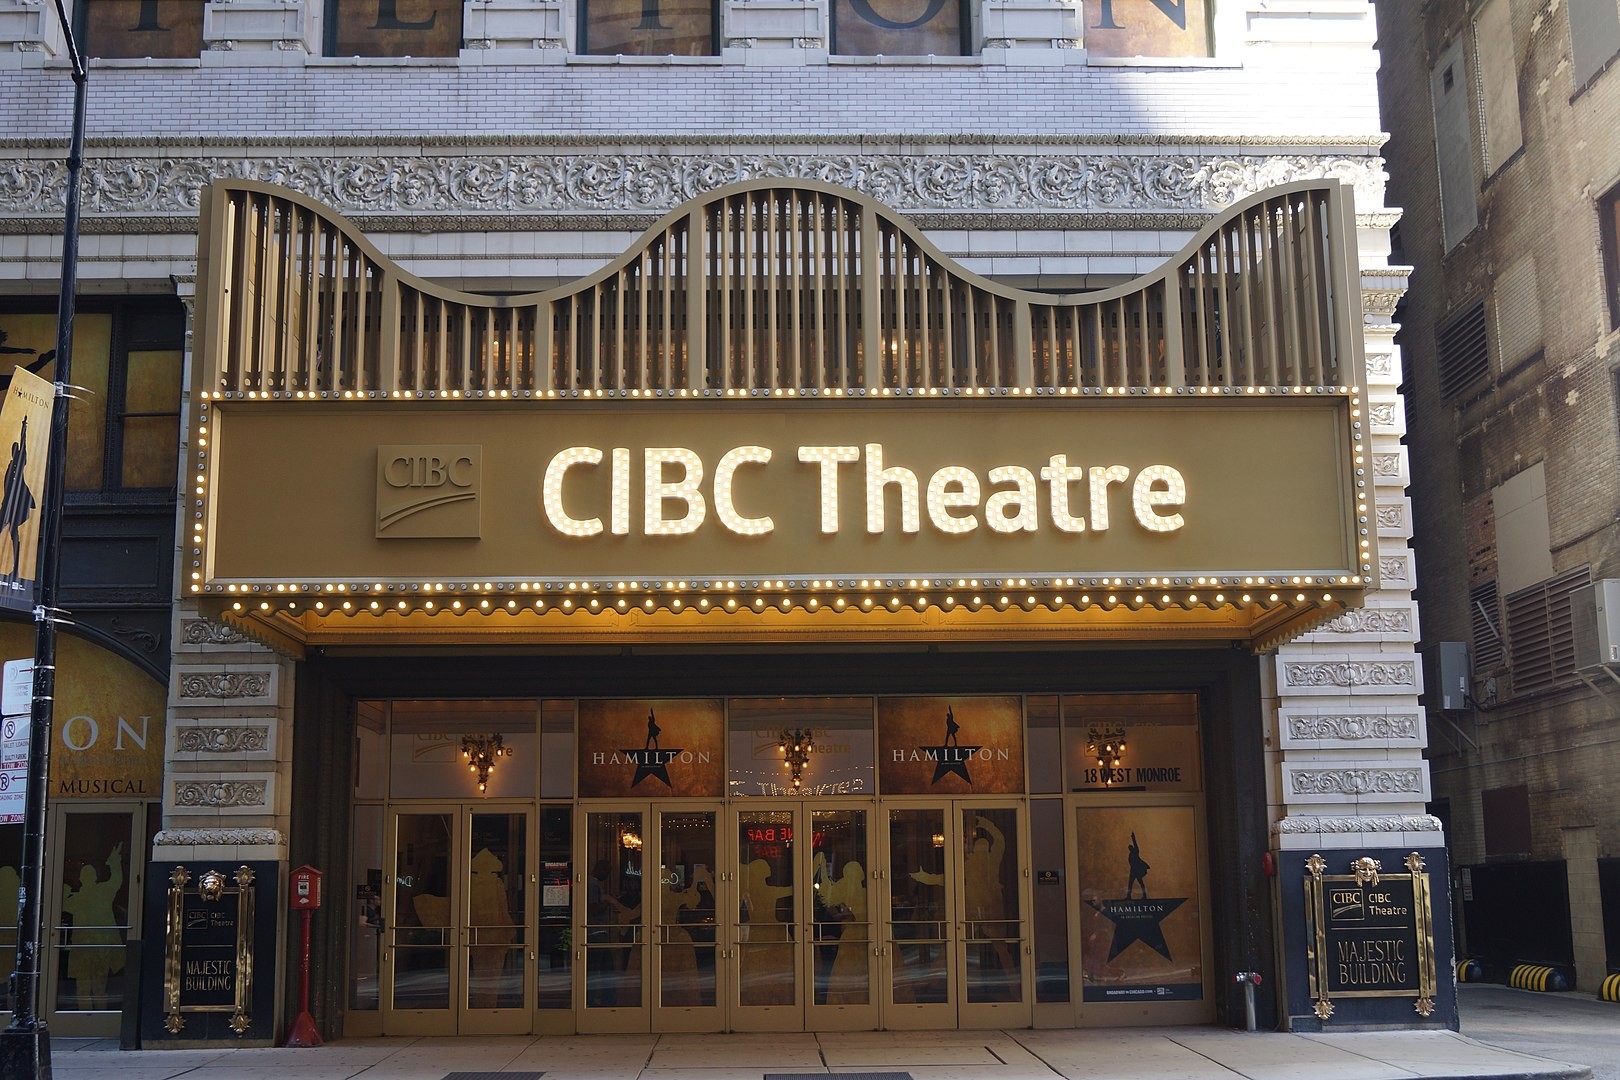 2020 Photo of the main entrance of the CIBC Theater (historic Majestic Theater)